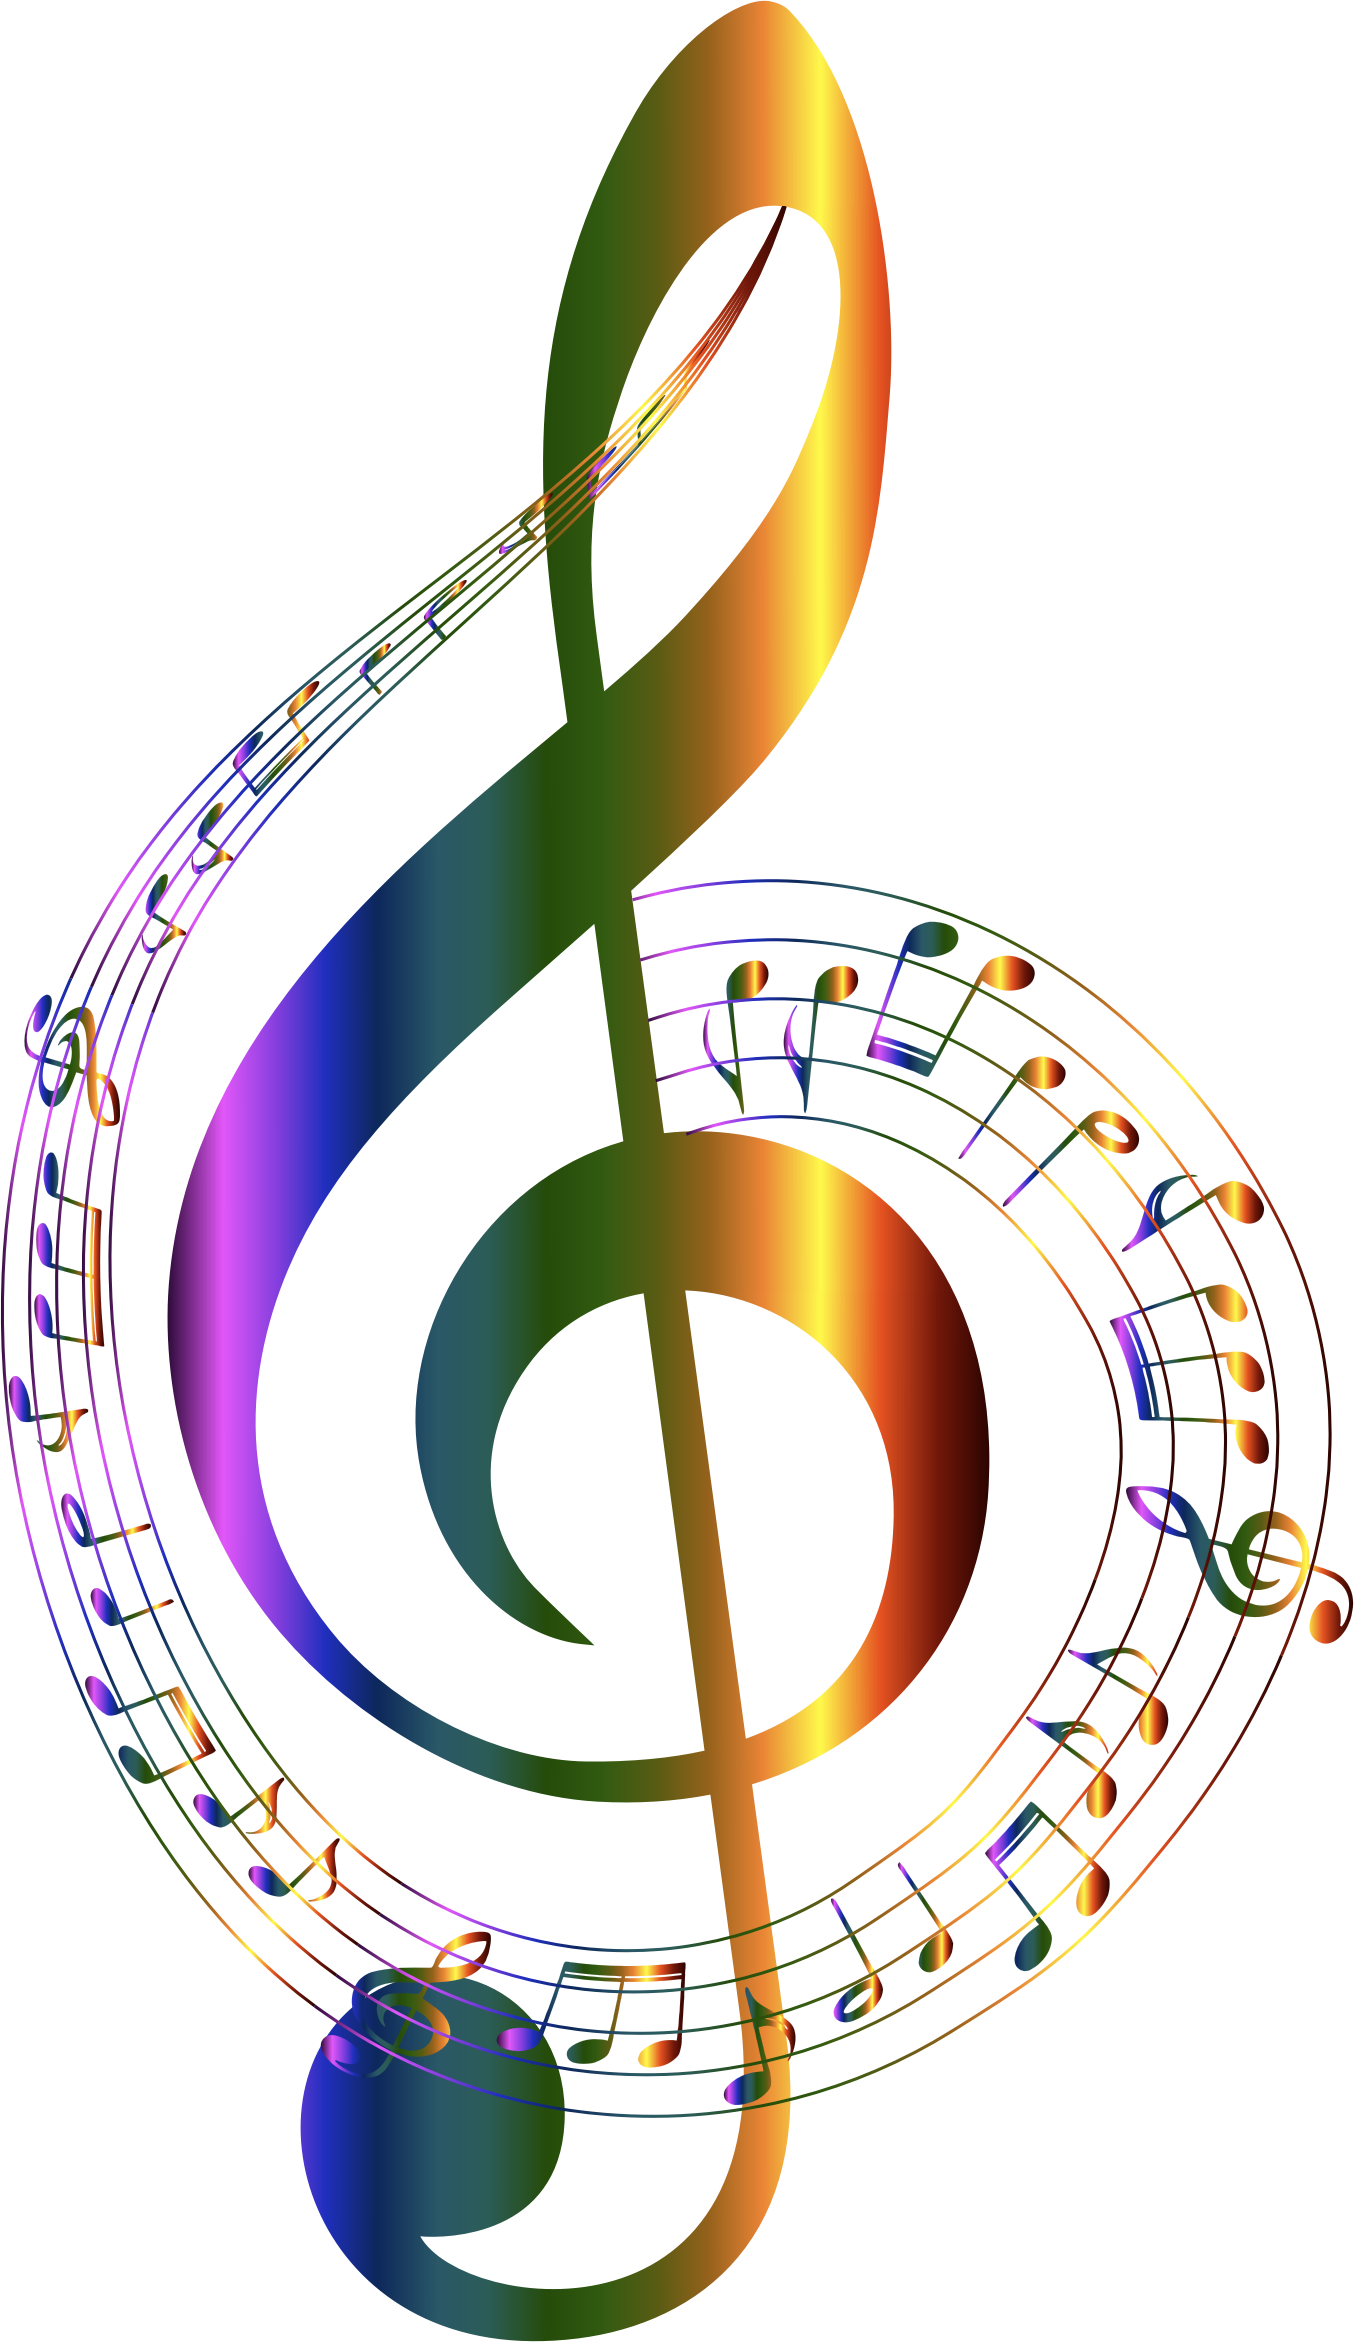 Chromatic Musical Notes Typographie Non Historique Par Gdj Music Notes Art Music Notes Music Images